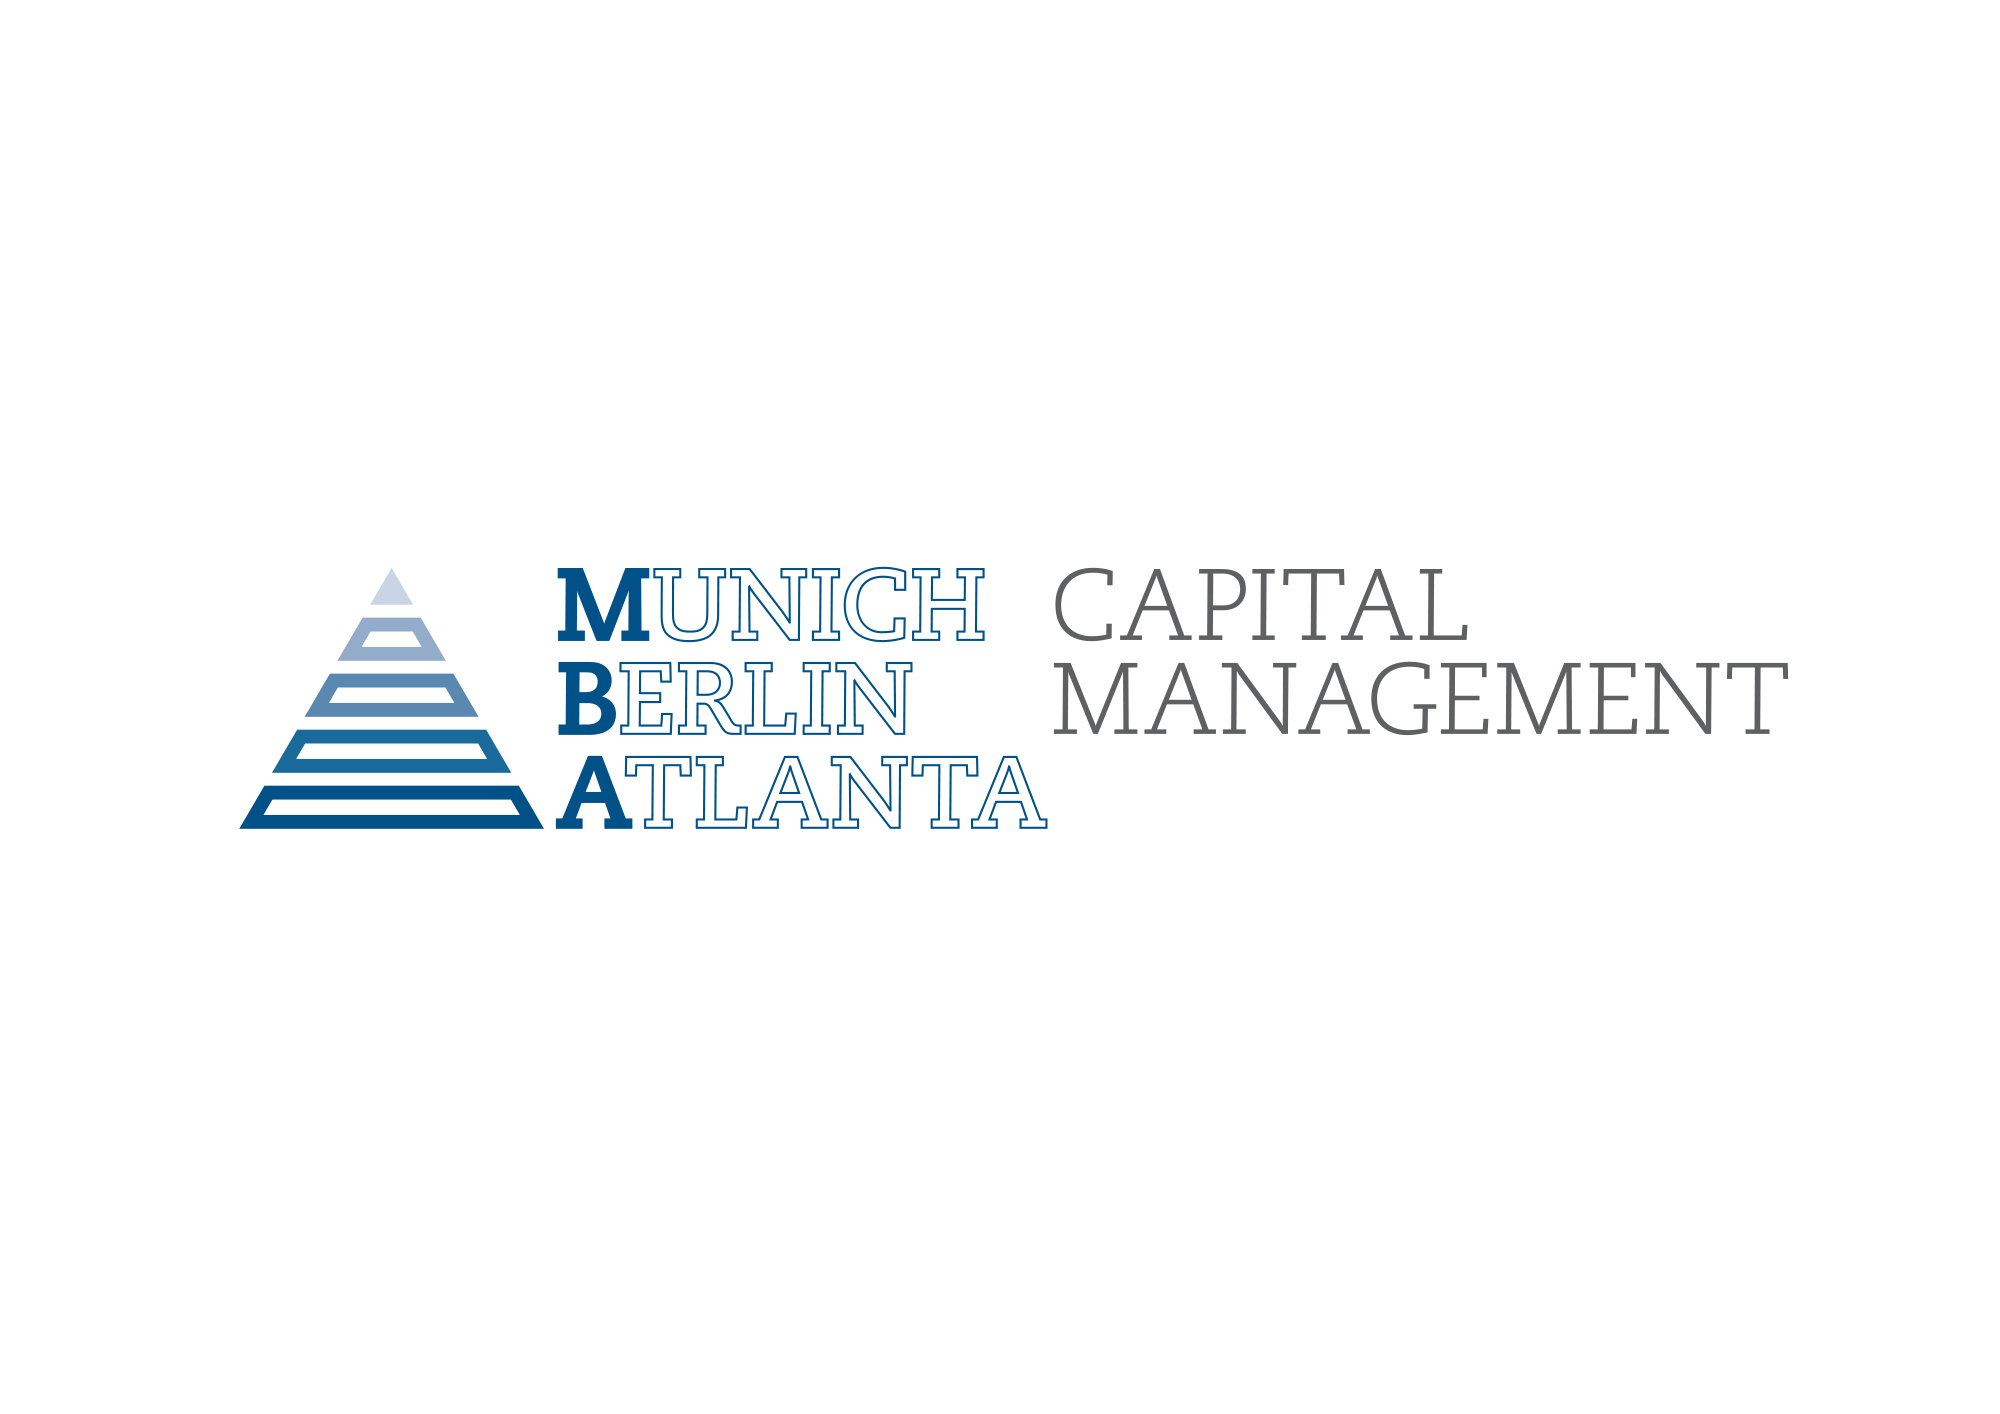 MBA-Management-Logo_Claim.jpg?fit=2000%2C1414